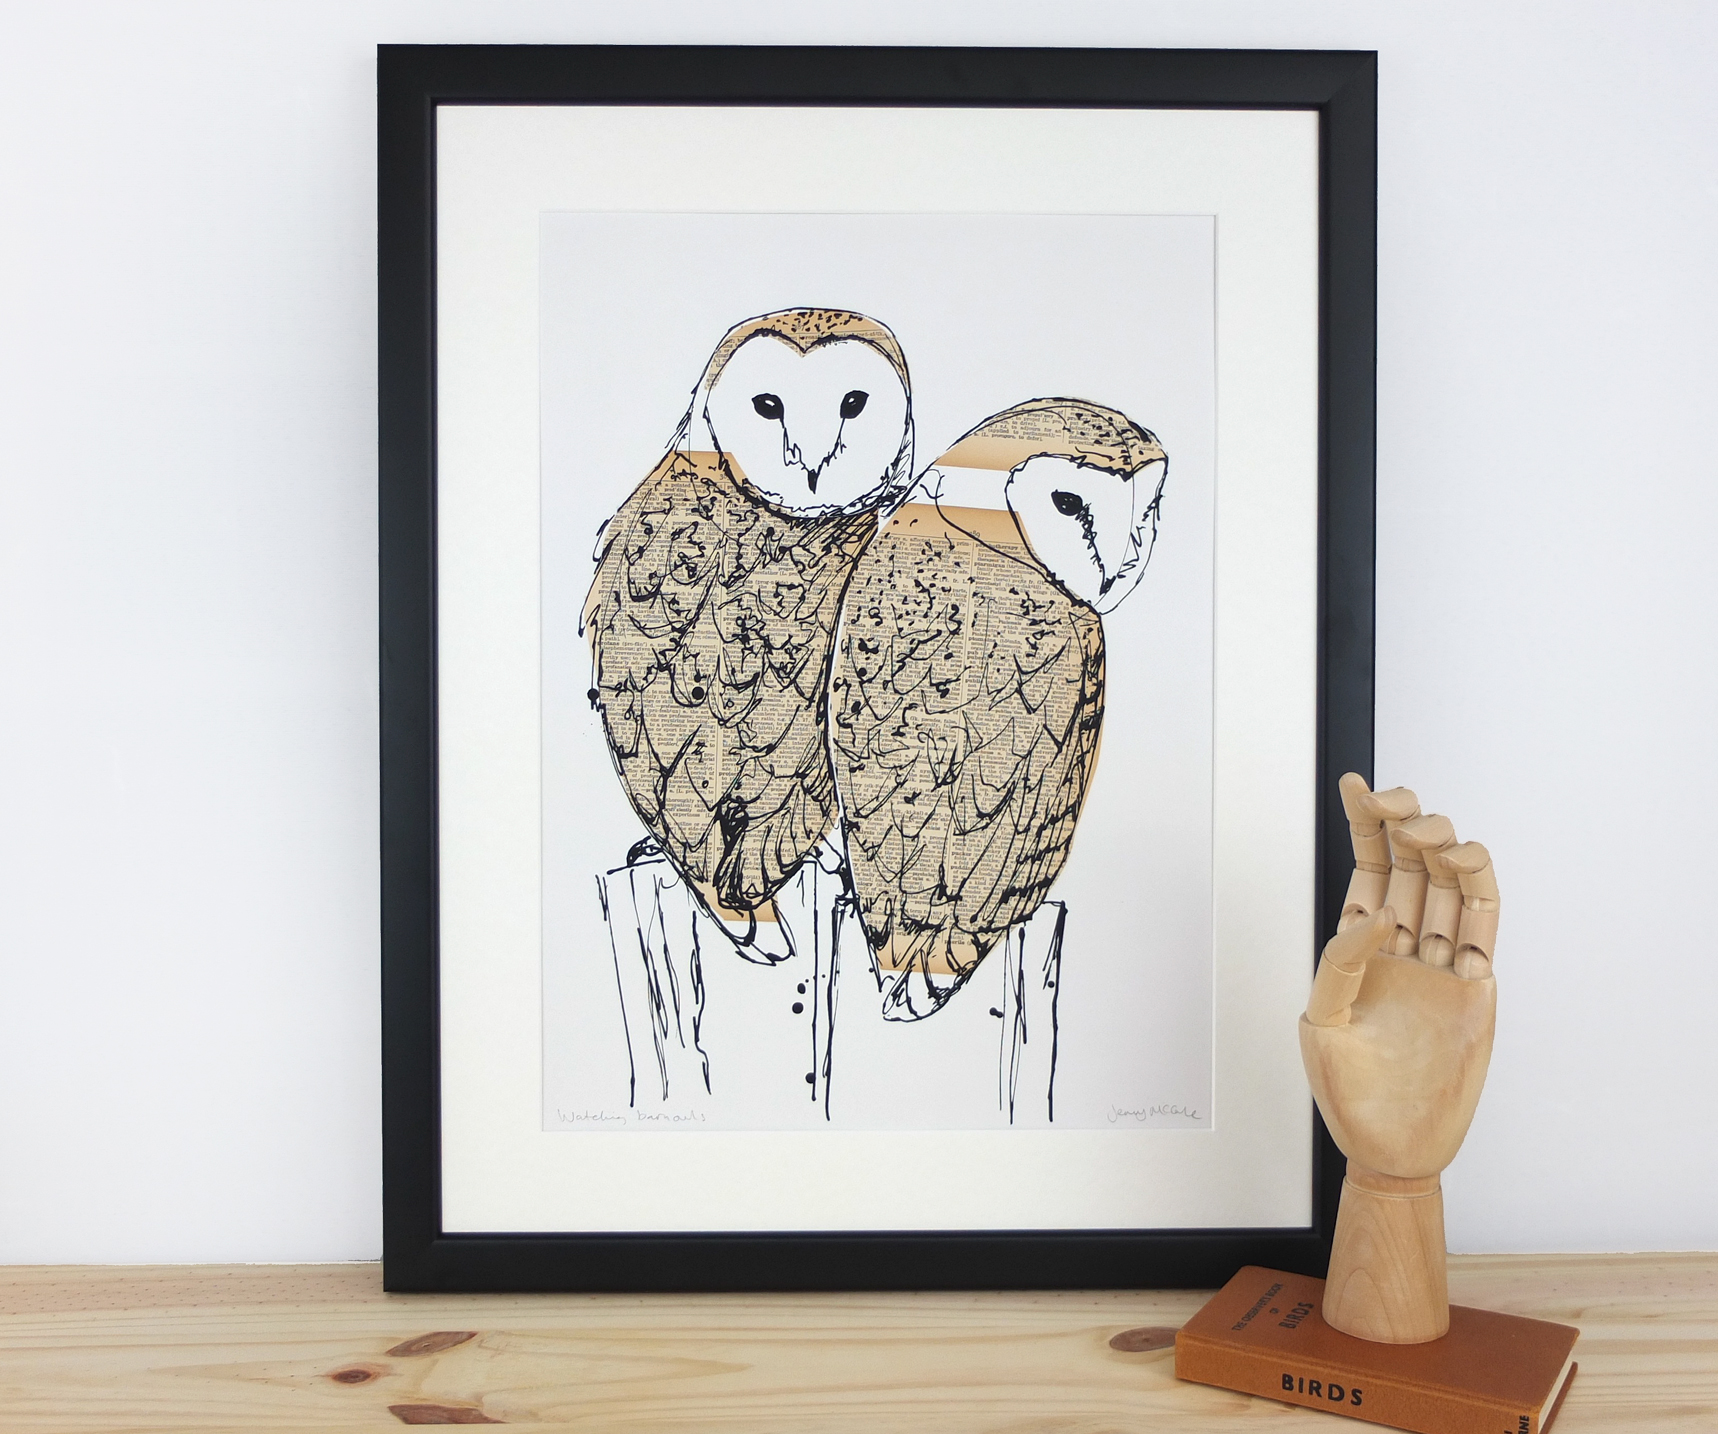 Watching Barn owls. 2016. Collaged screen print. Edition of 30. SOLD OUT